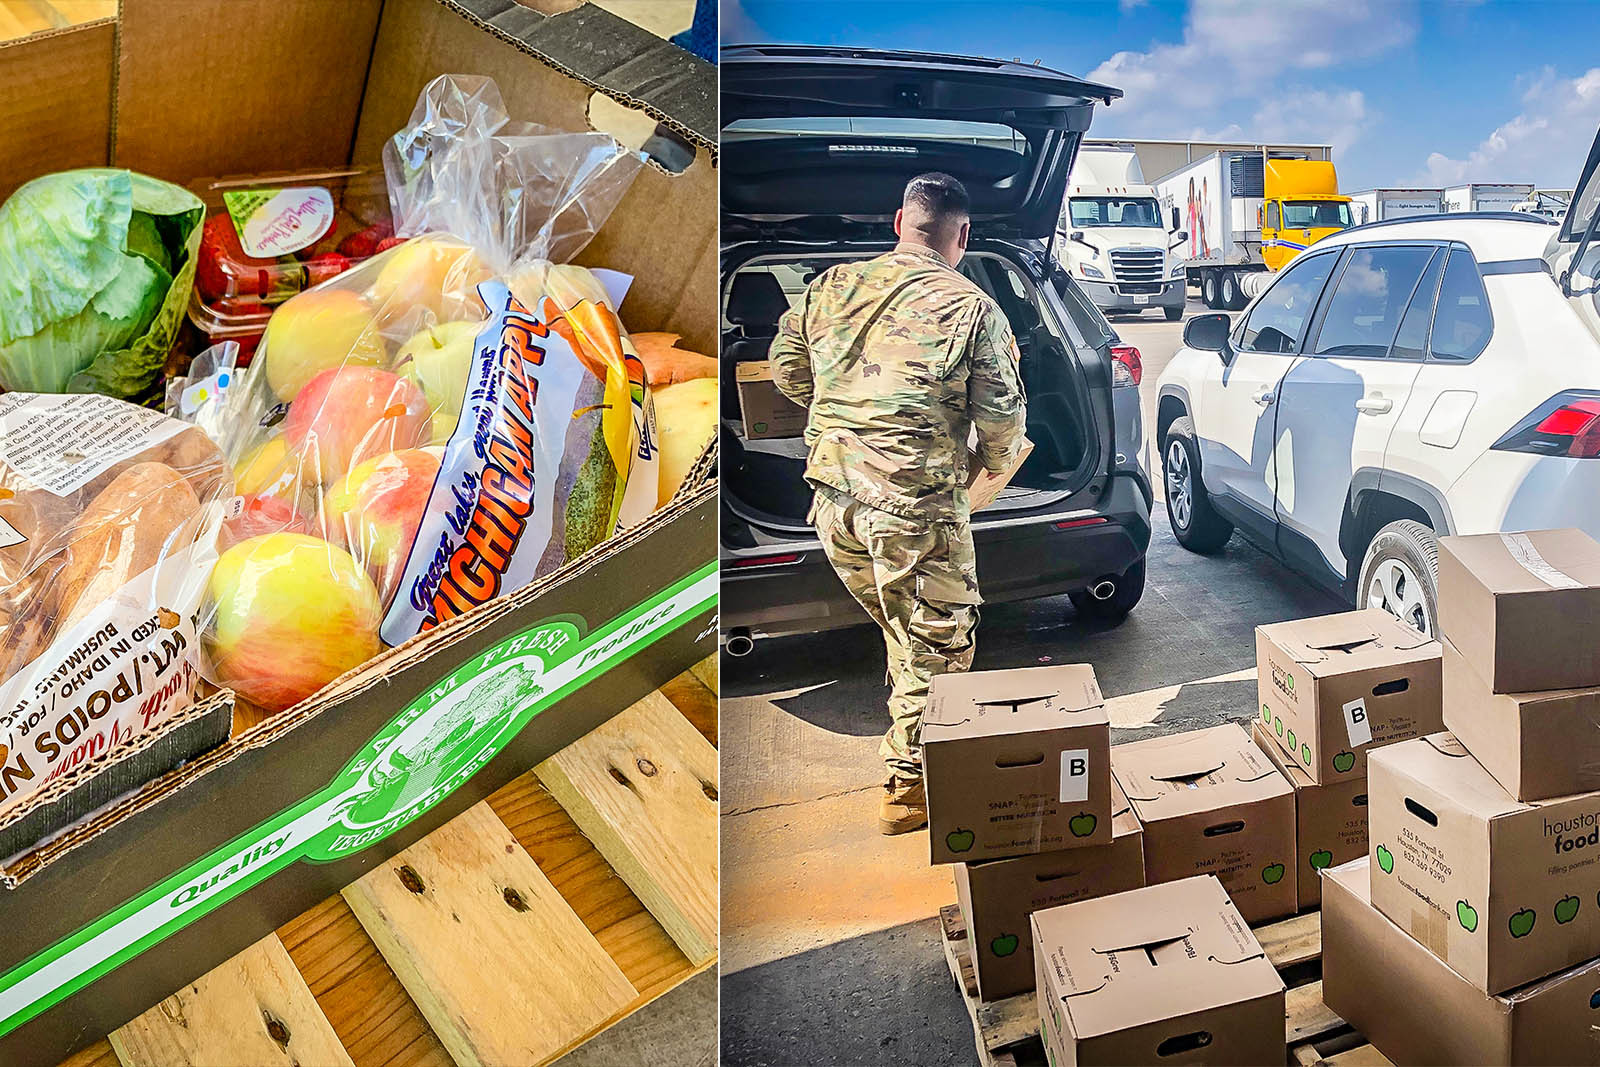 Providing boxes filled with nutritious options like fresh produce is a priority at food distribution events.